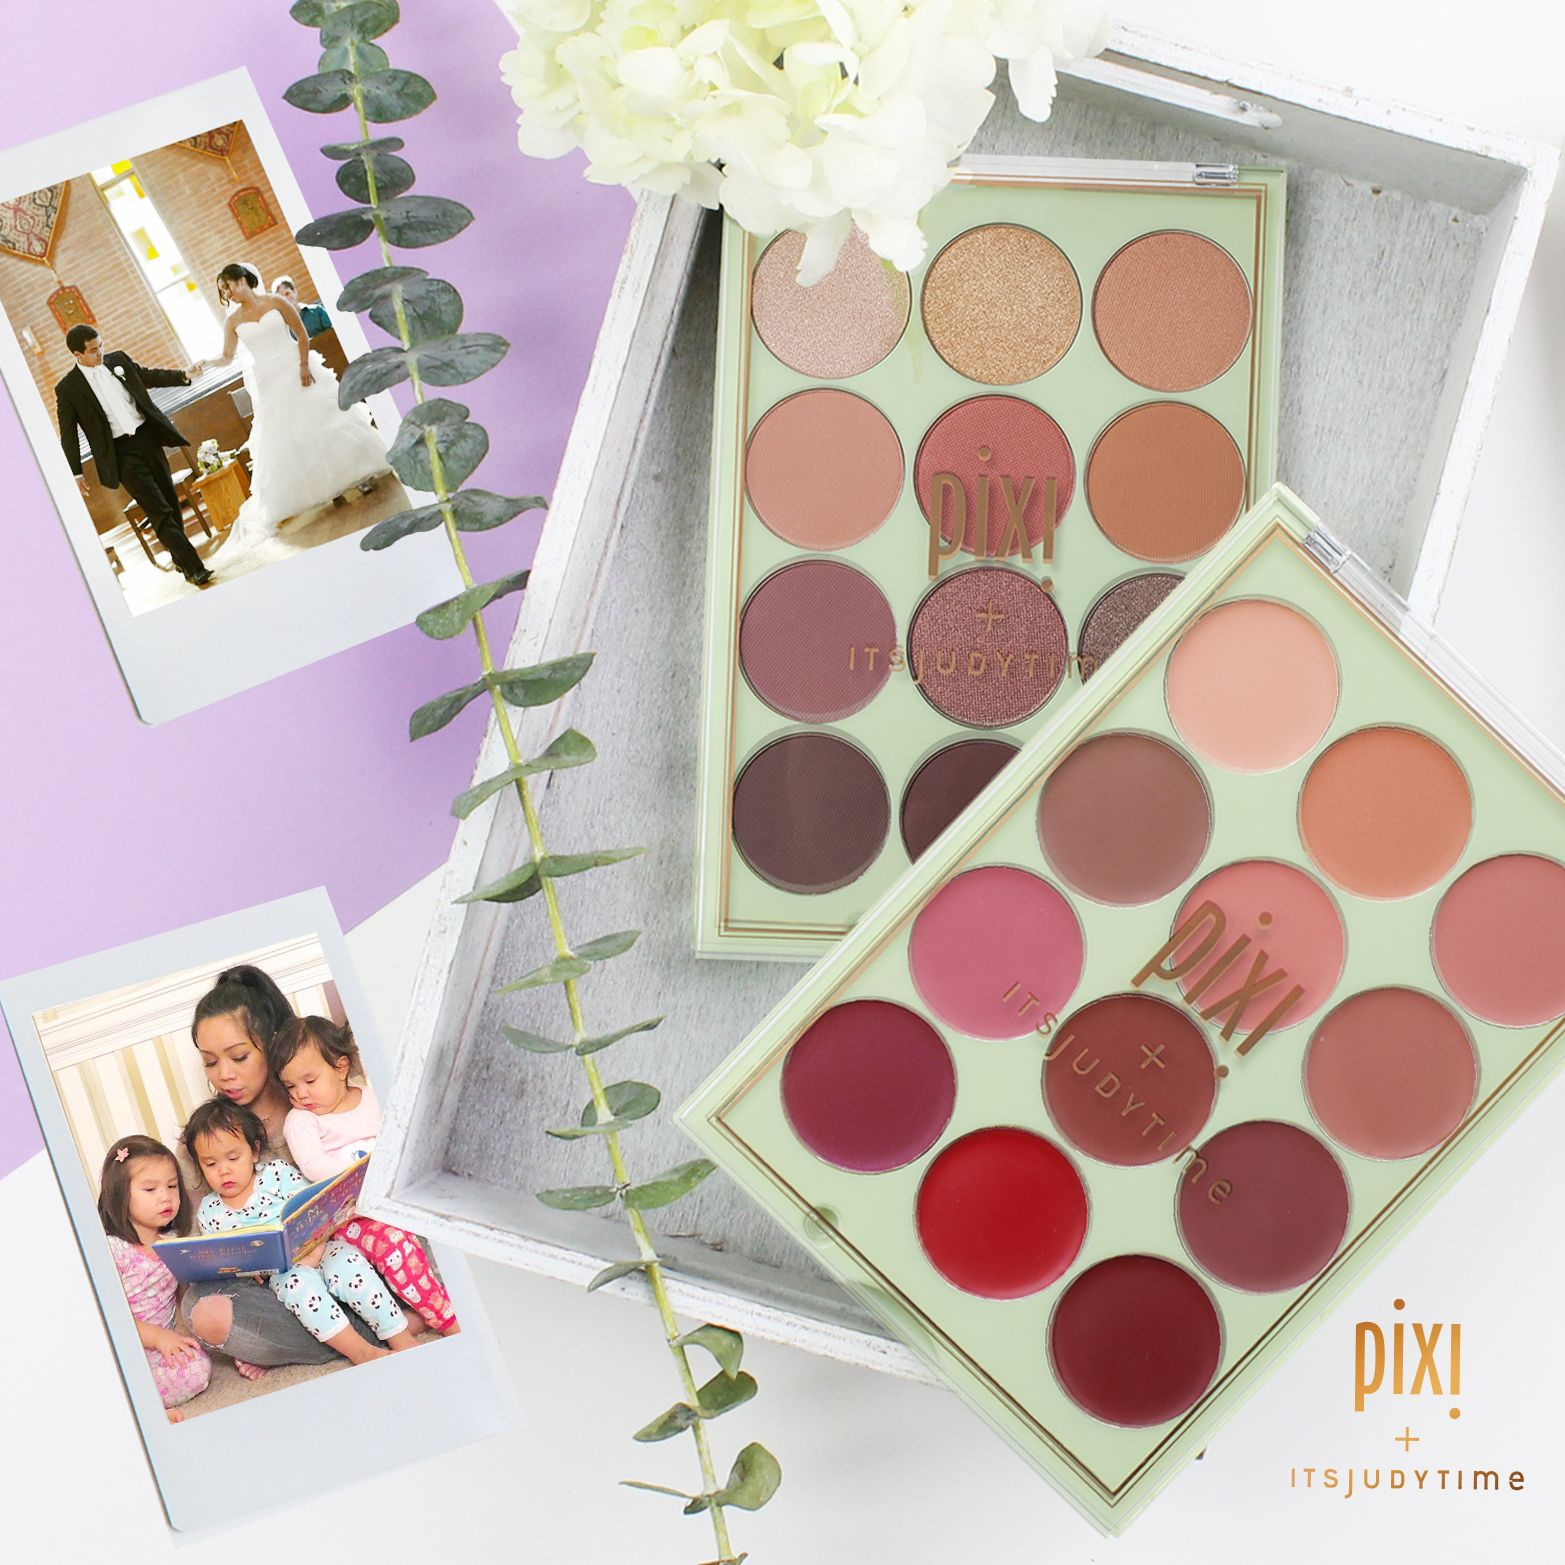 Pixi x Itsjudytime Get The Look Palette - It's Lip Time by Pixi by Petra #12